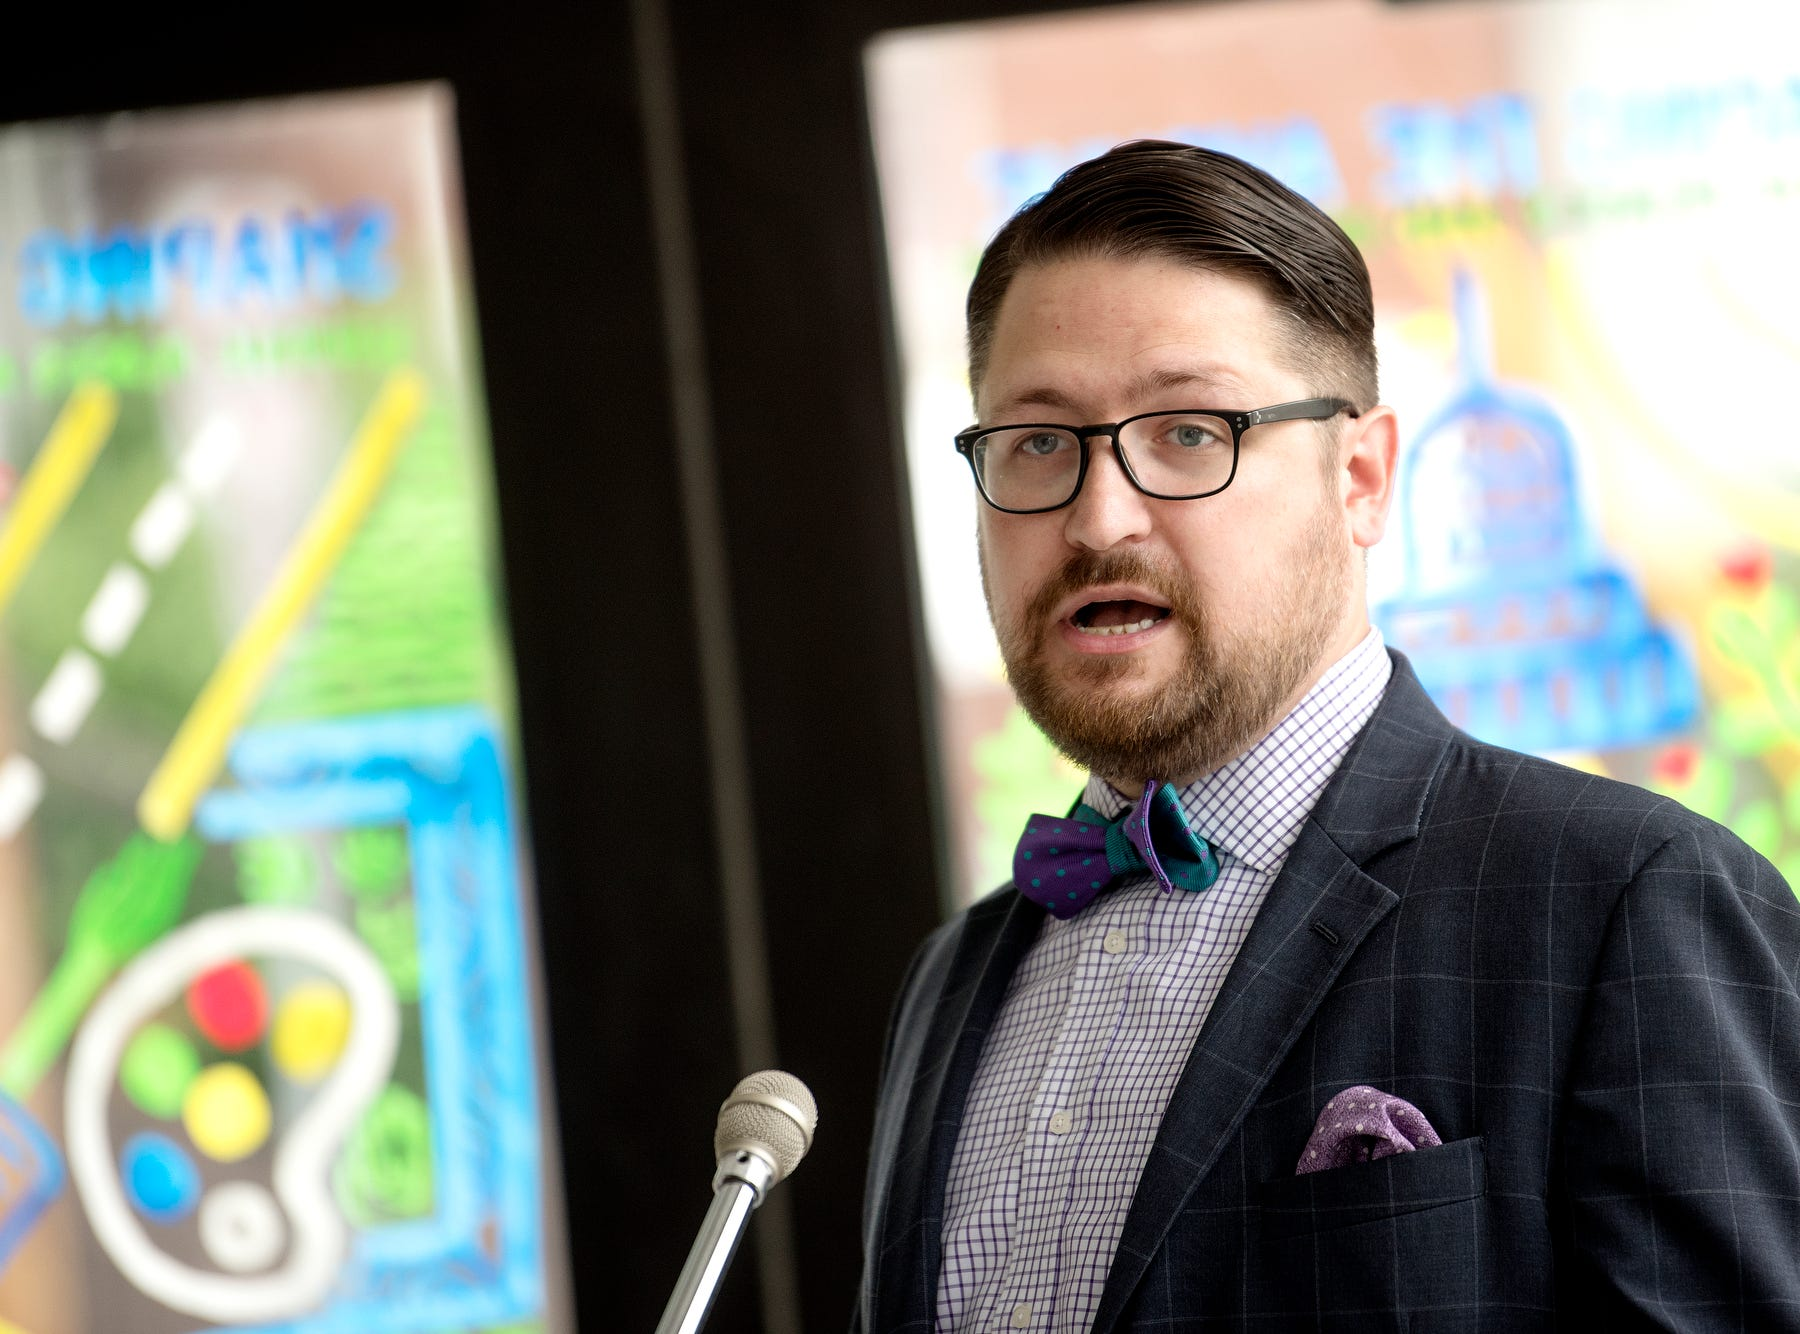 CATA chairperson Nathan Triplett speaks during a press conference kicking off 'Imagine the Avenue' on Monday, Aug. 6, 2018, at The Venue on Michigan Avenue in Lansing.